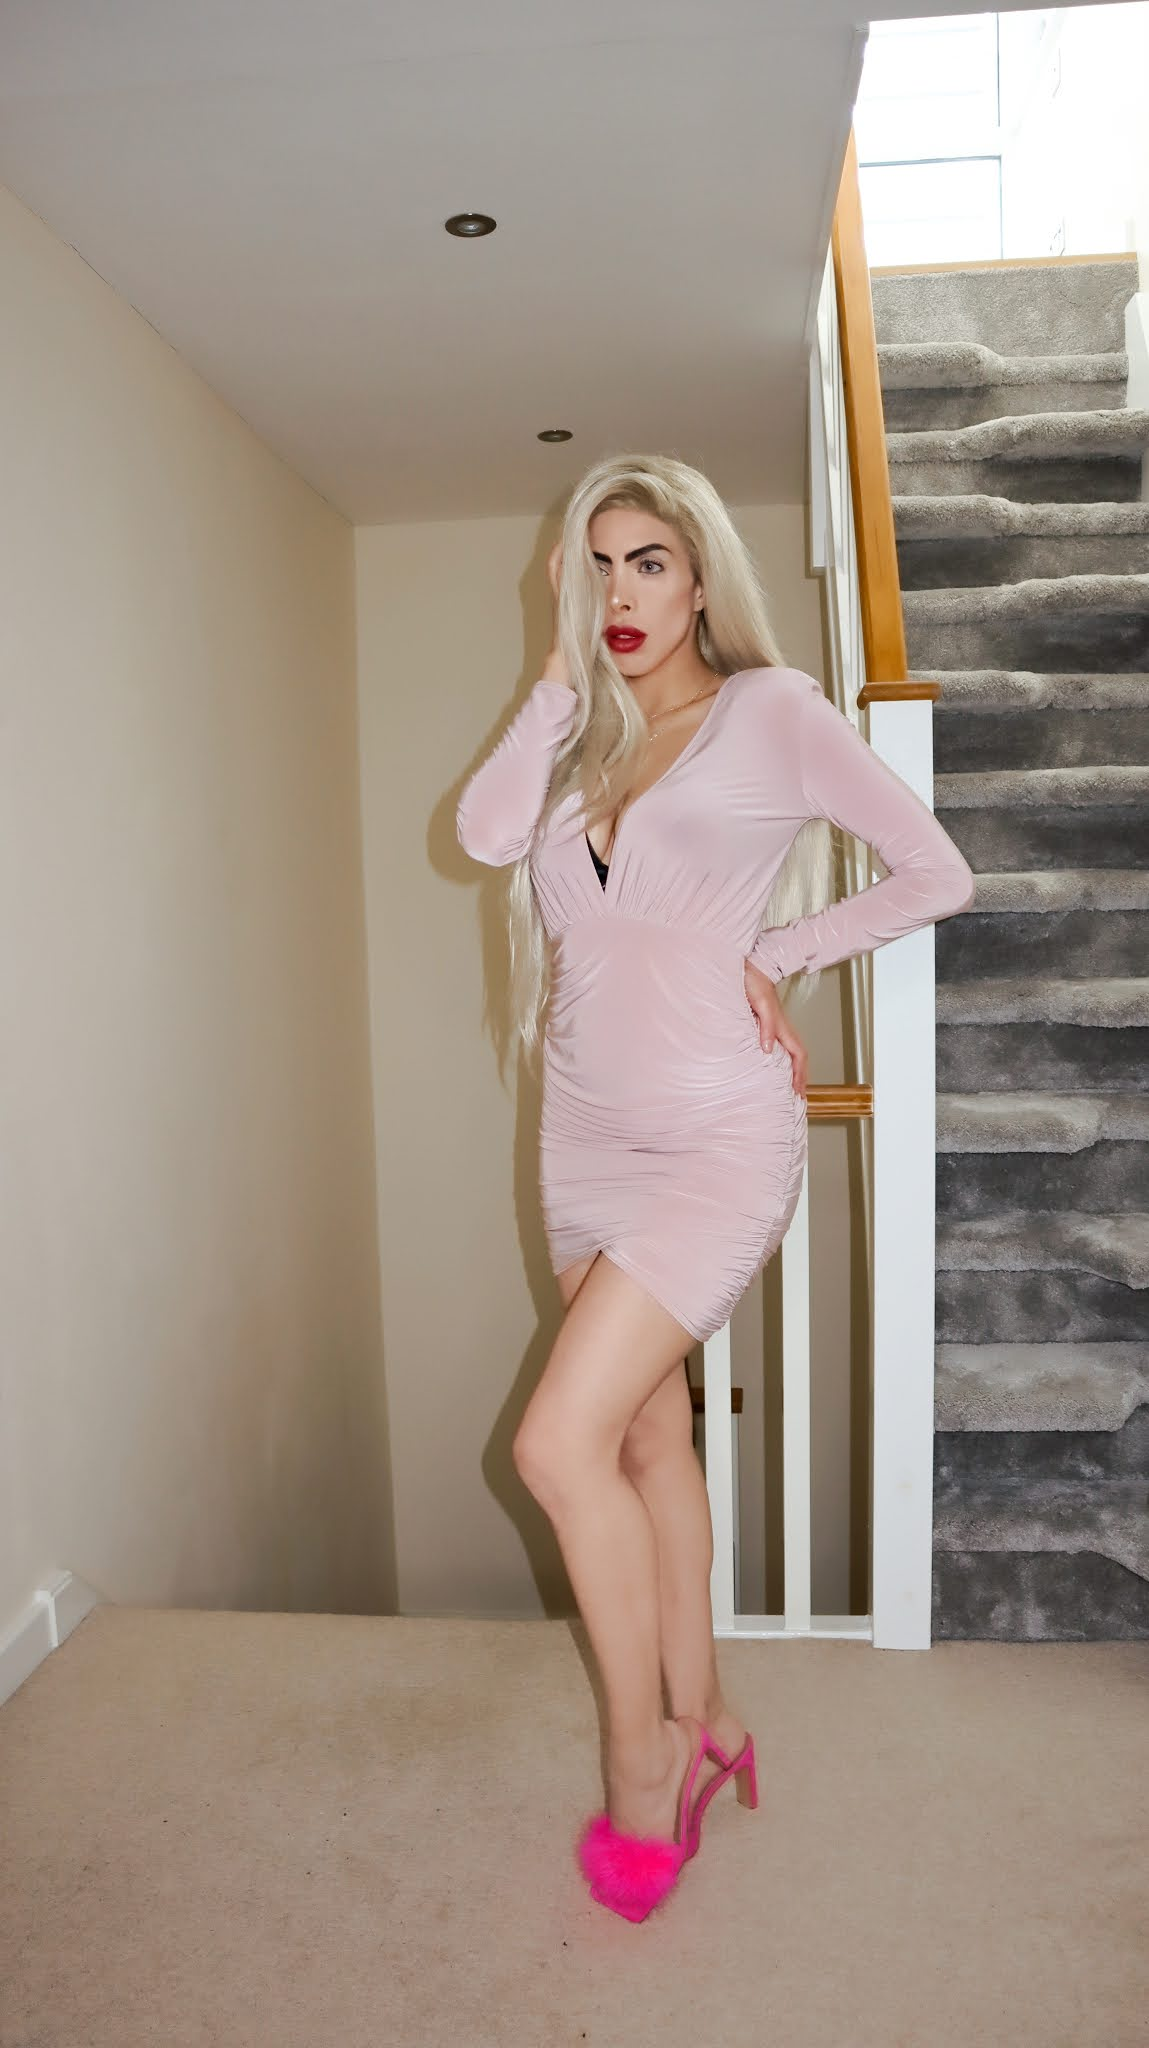 The Femme Luxe Nude Padded Shoulder Slinky Bodycon Mini Dress in model Madison